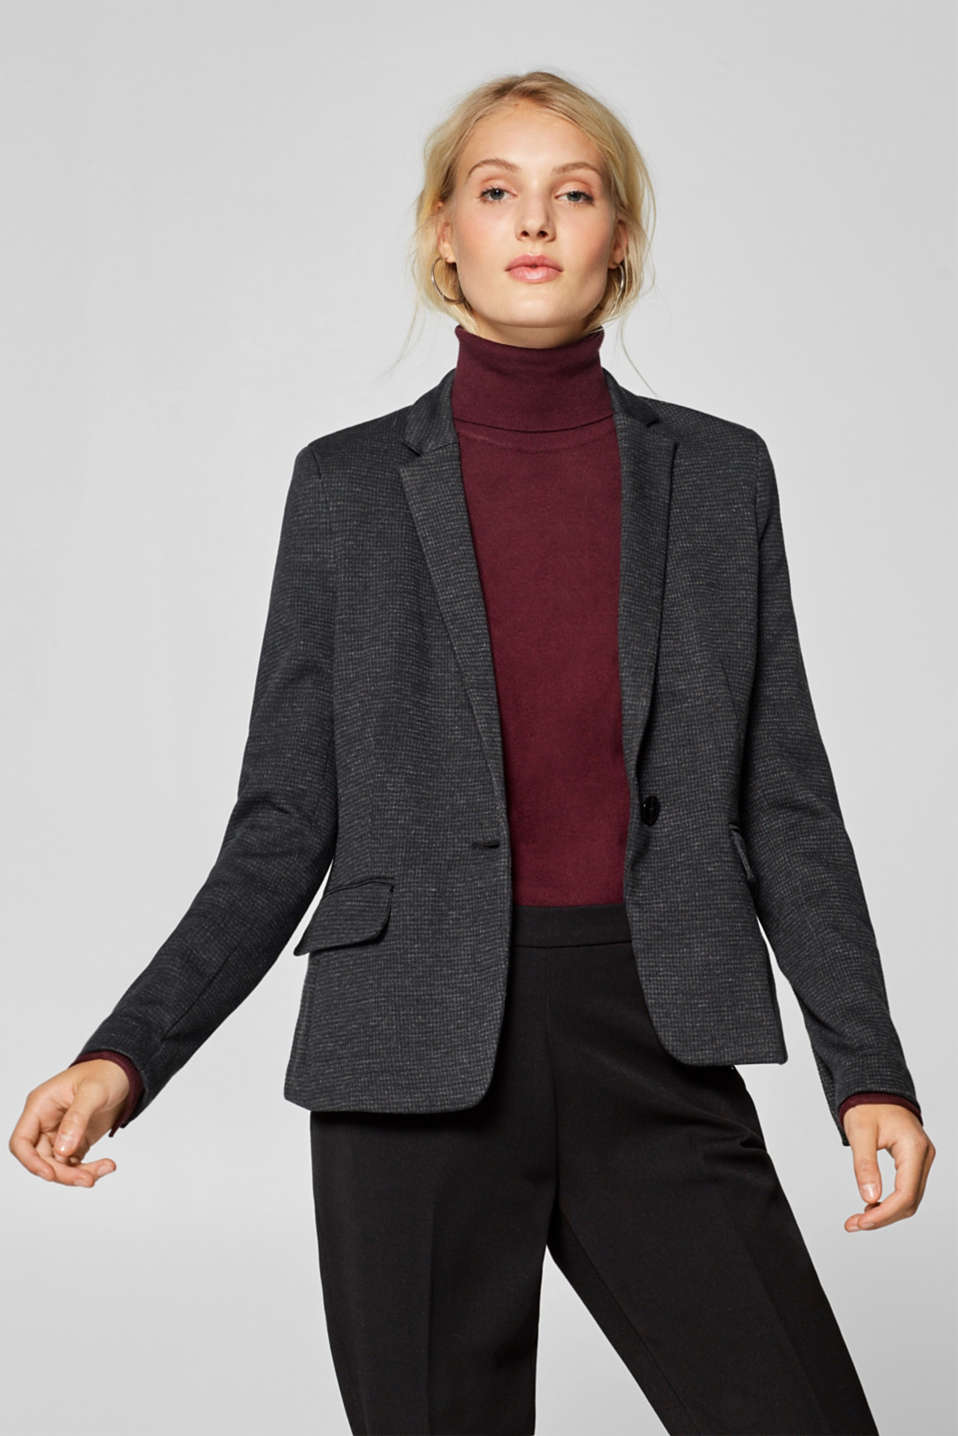 Esprit - Sweatshirt blazer with a fine check pattern